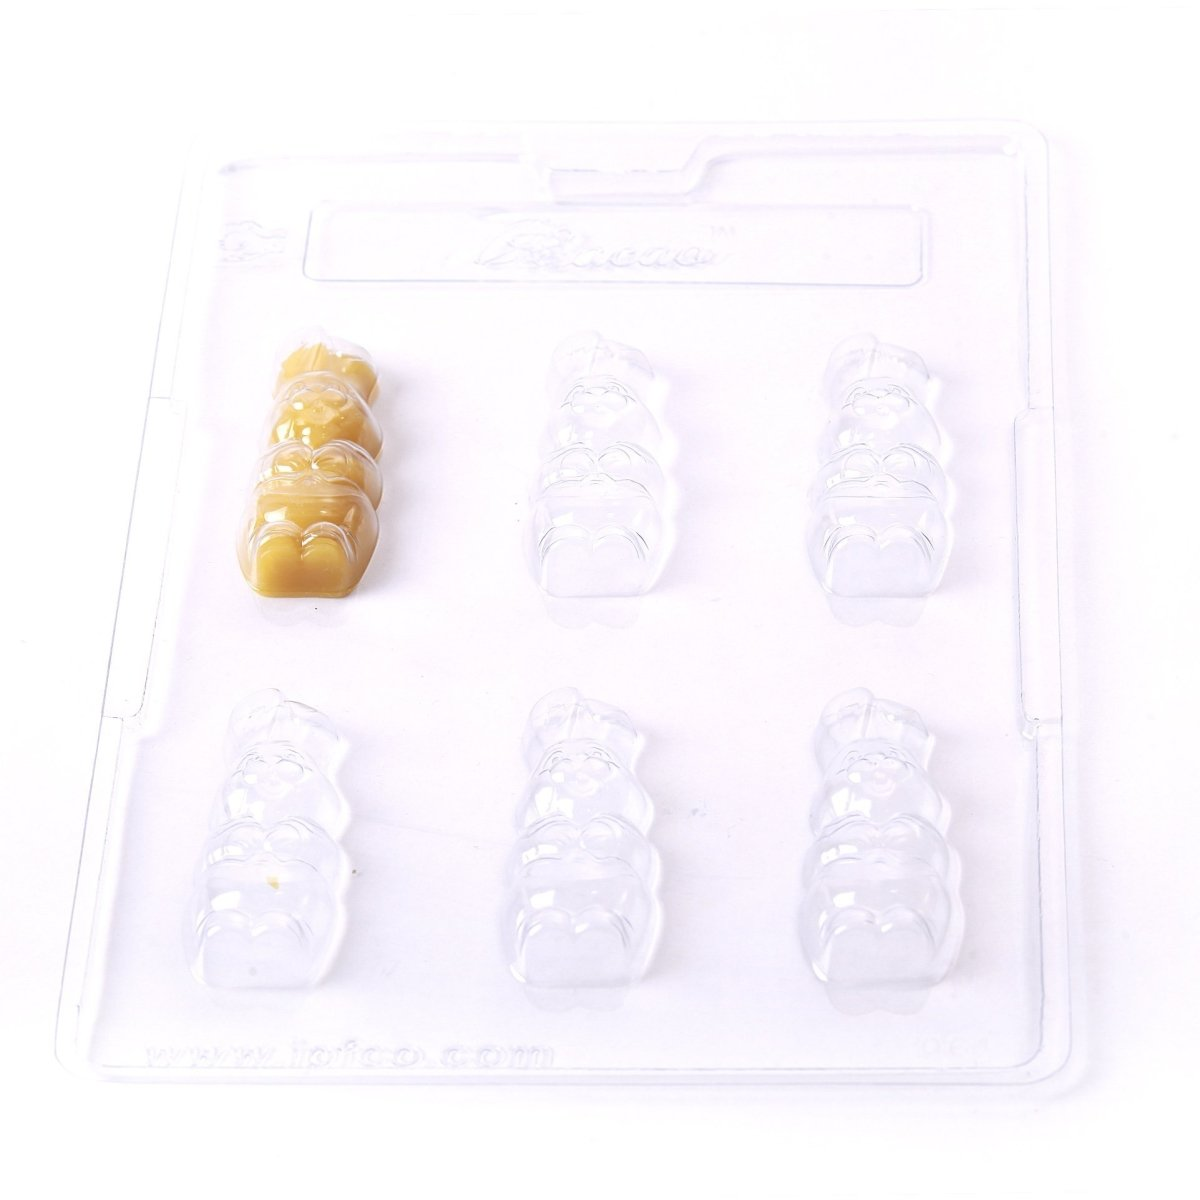 Small Easter Bunny Chocolate/Sweet/Soap/Plaster/Bath Bomb Mould #064 (6 cavity) - Mystic Moments UK